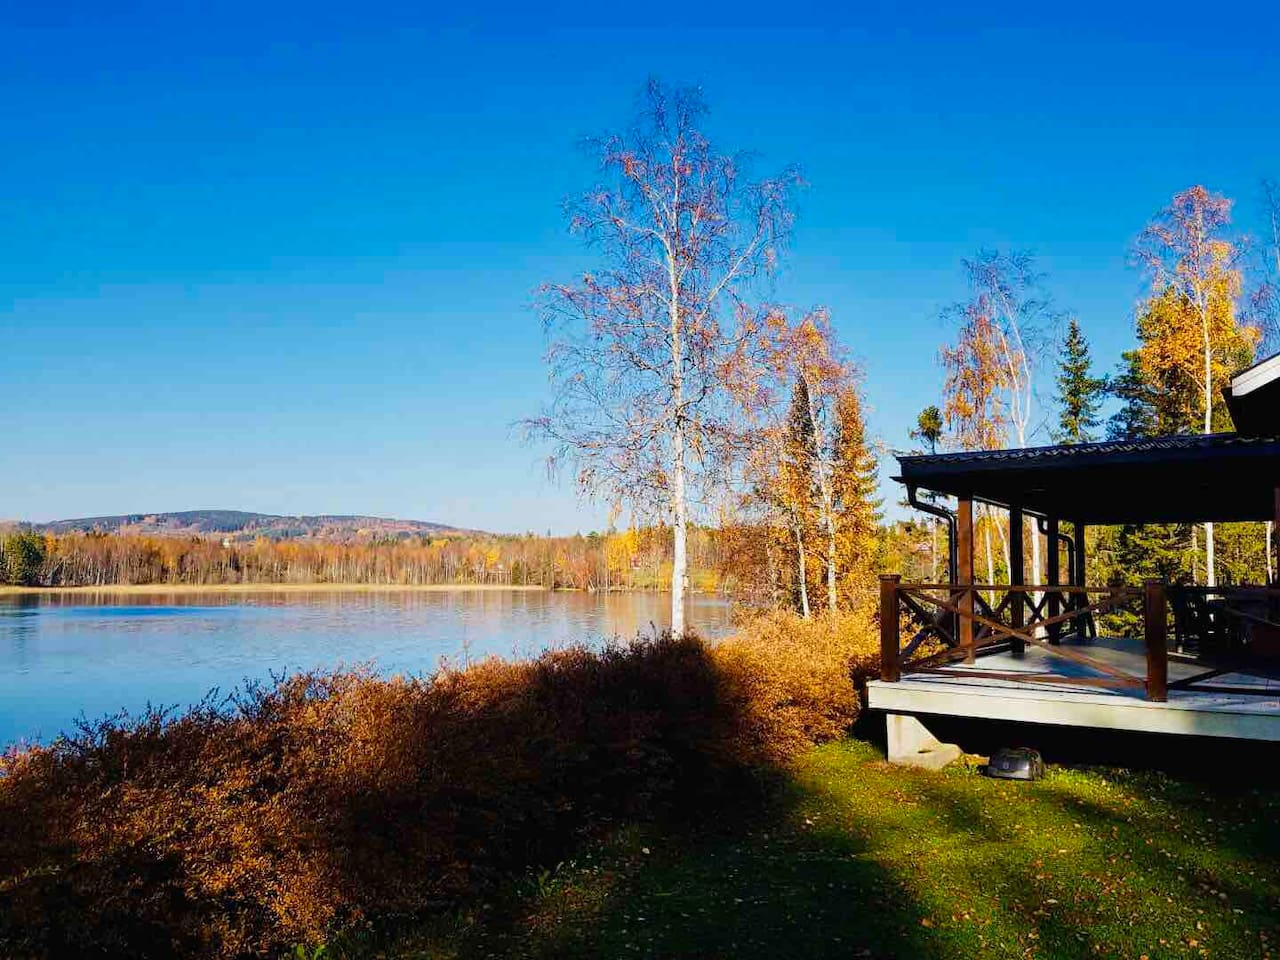 Swedish autumn at its best, cold but colourful.